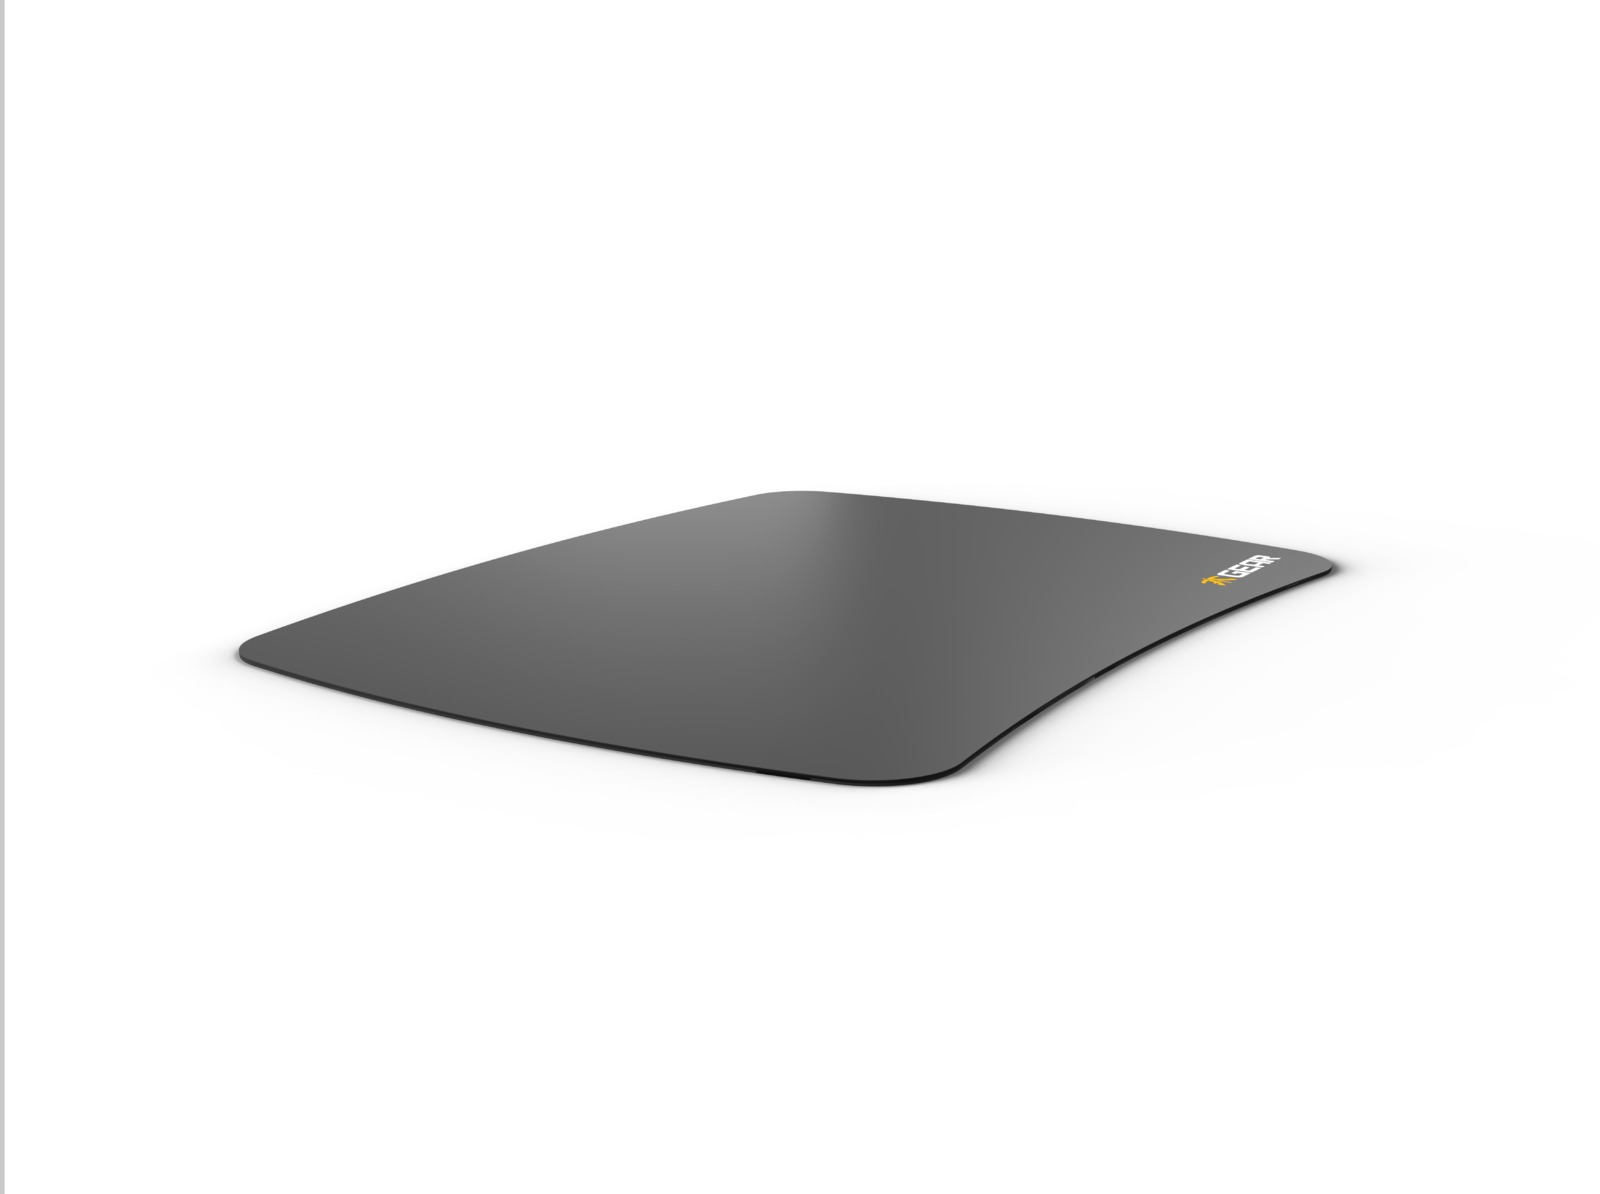 Fnatic Boost Pro Gaming Mousepad - Control L for PC Games image